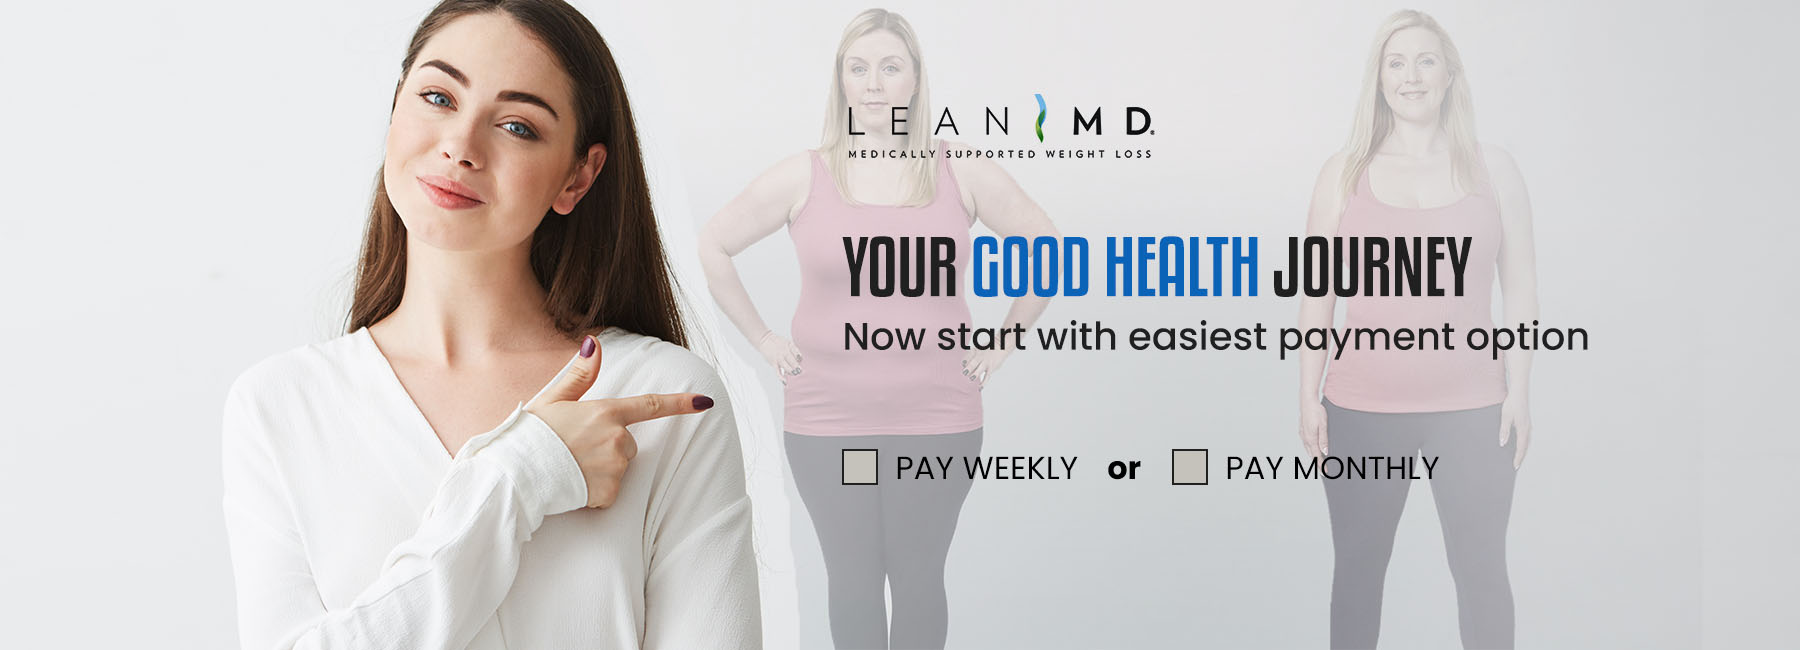 LeanMD weight management